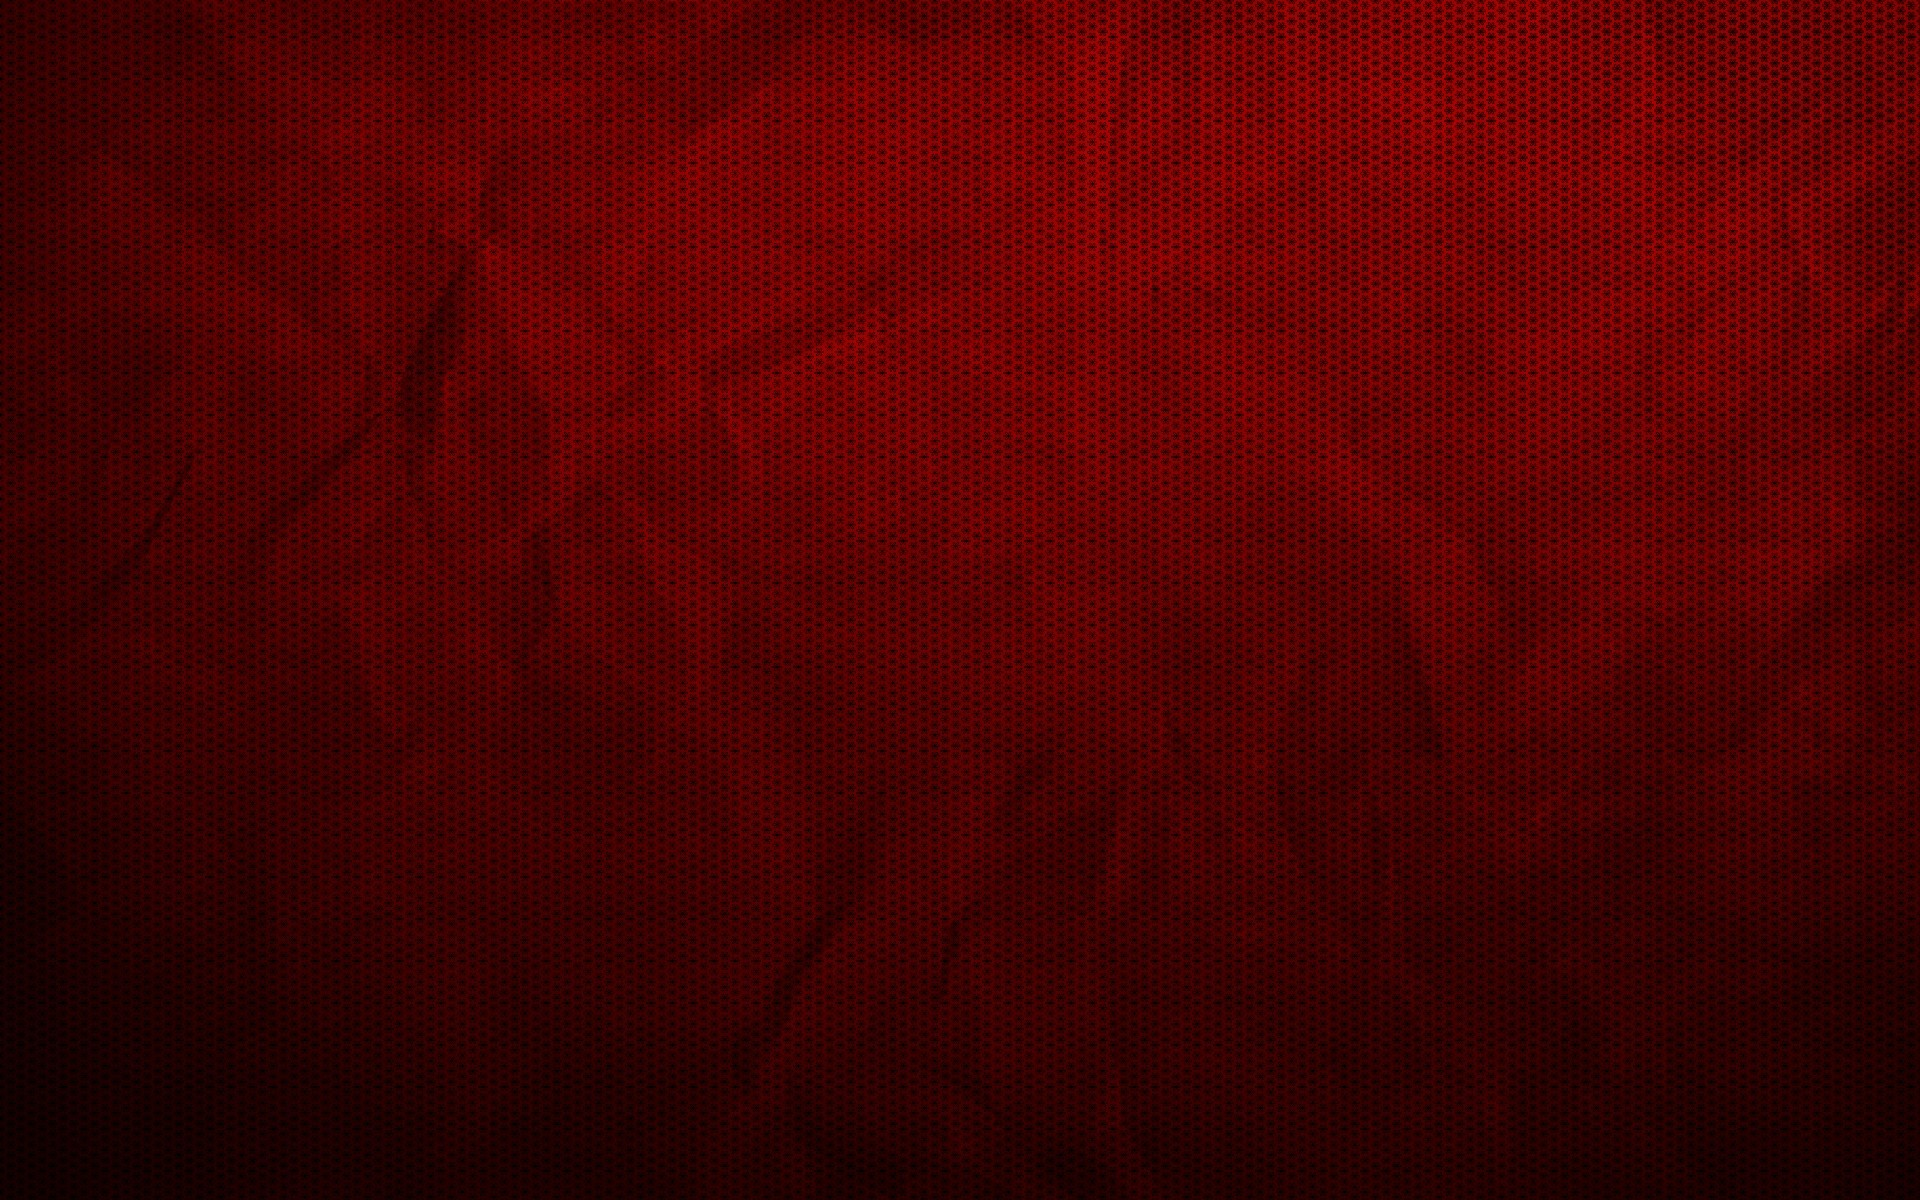 Red Textures Wallpaper 1920x1200 Red Textures Background 1920x1200